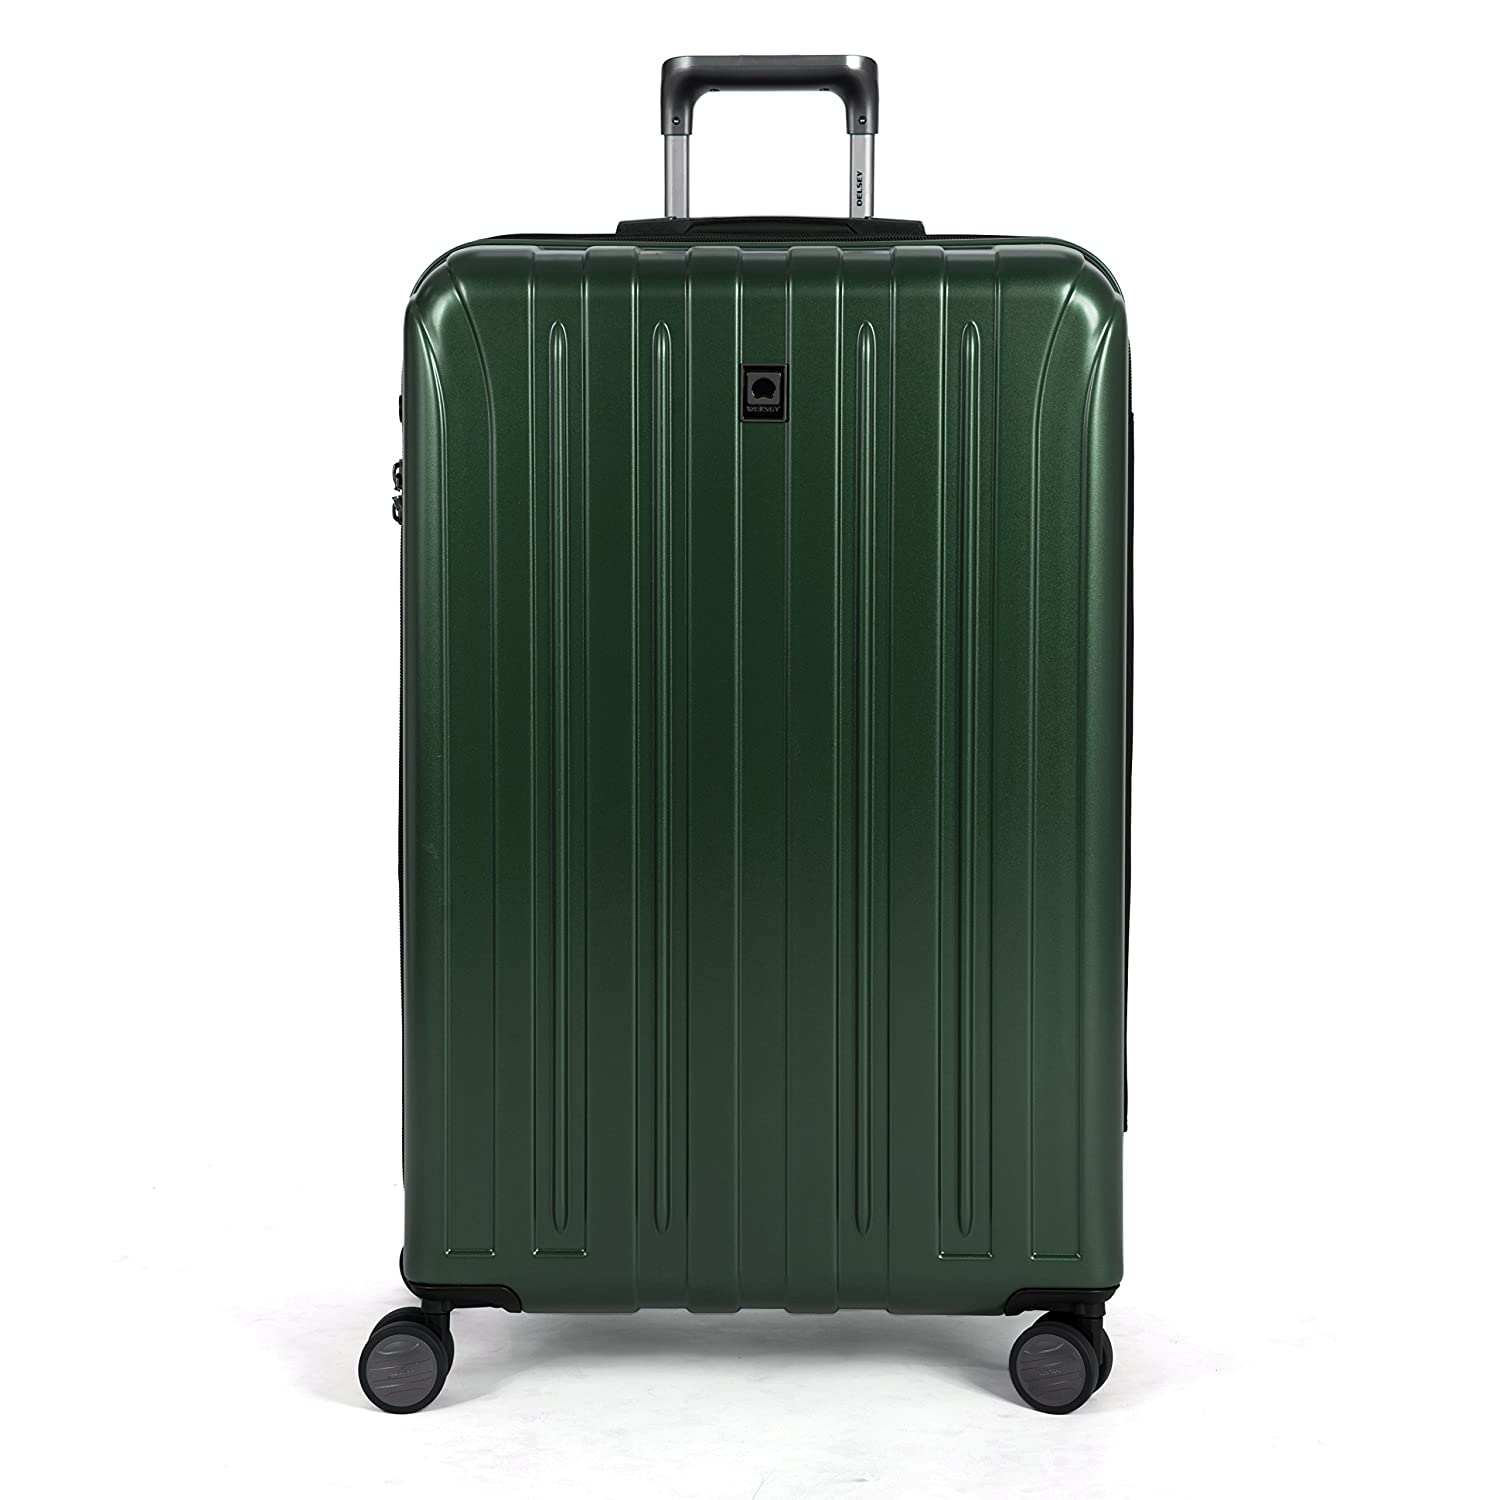 Delsey Luggage Helium Titanium 29 Inch EXP Spinner Trolley Metallic, Graphite, One Size Inc. 00207183001